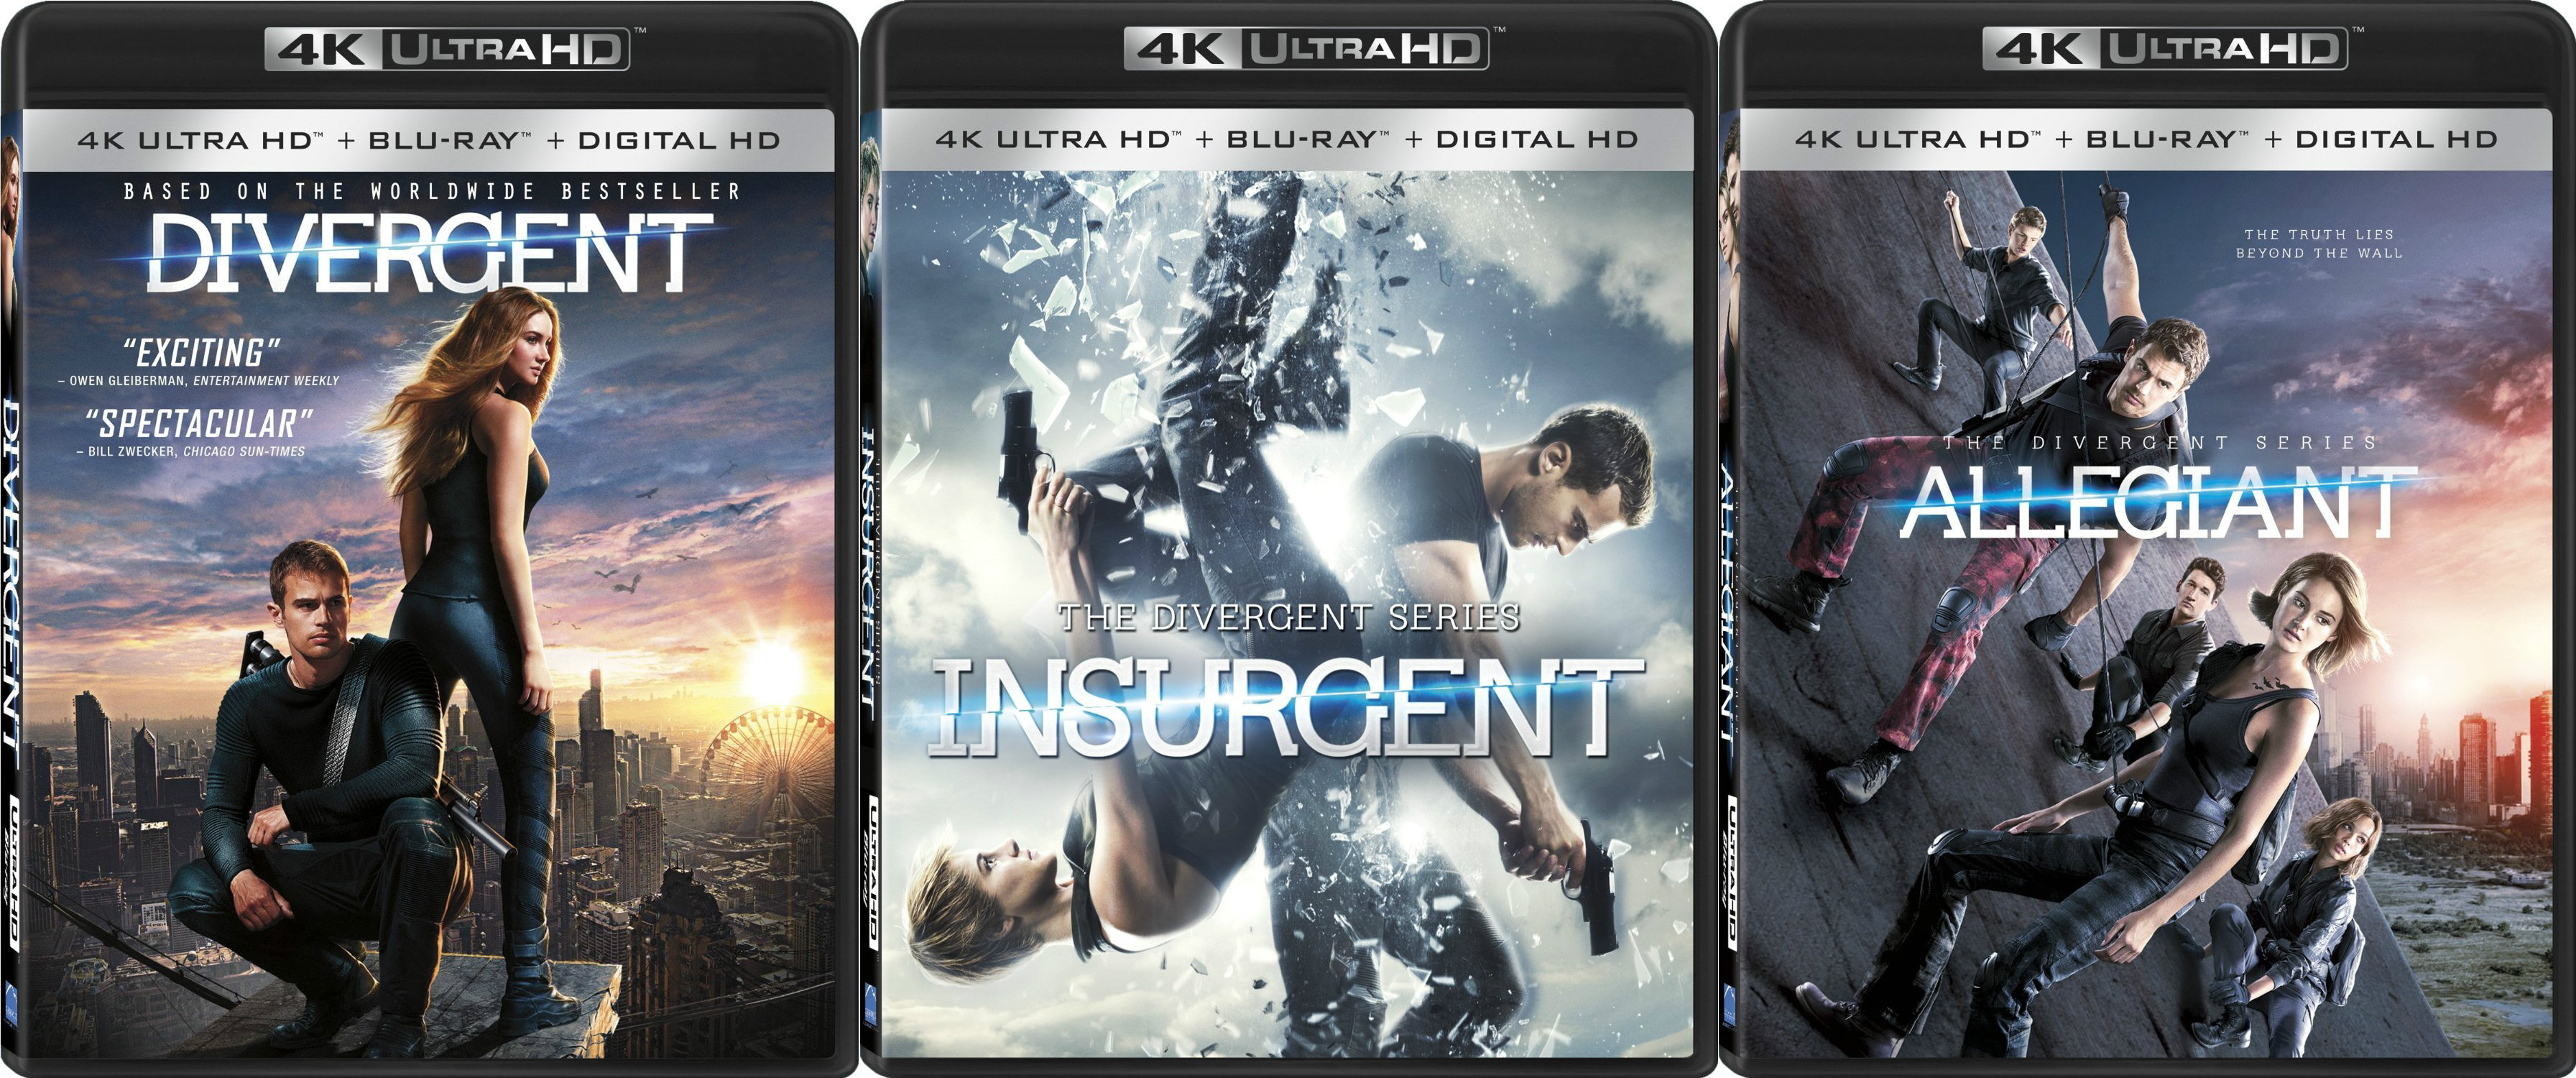 Divergent UHD Prize Pack